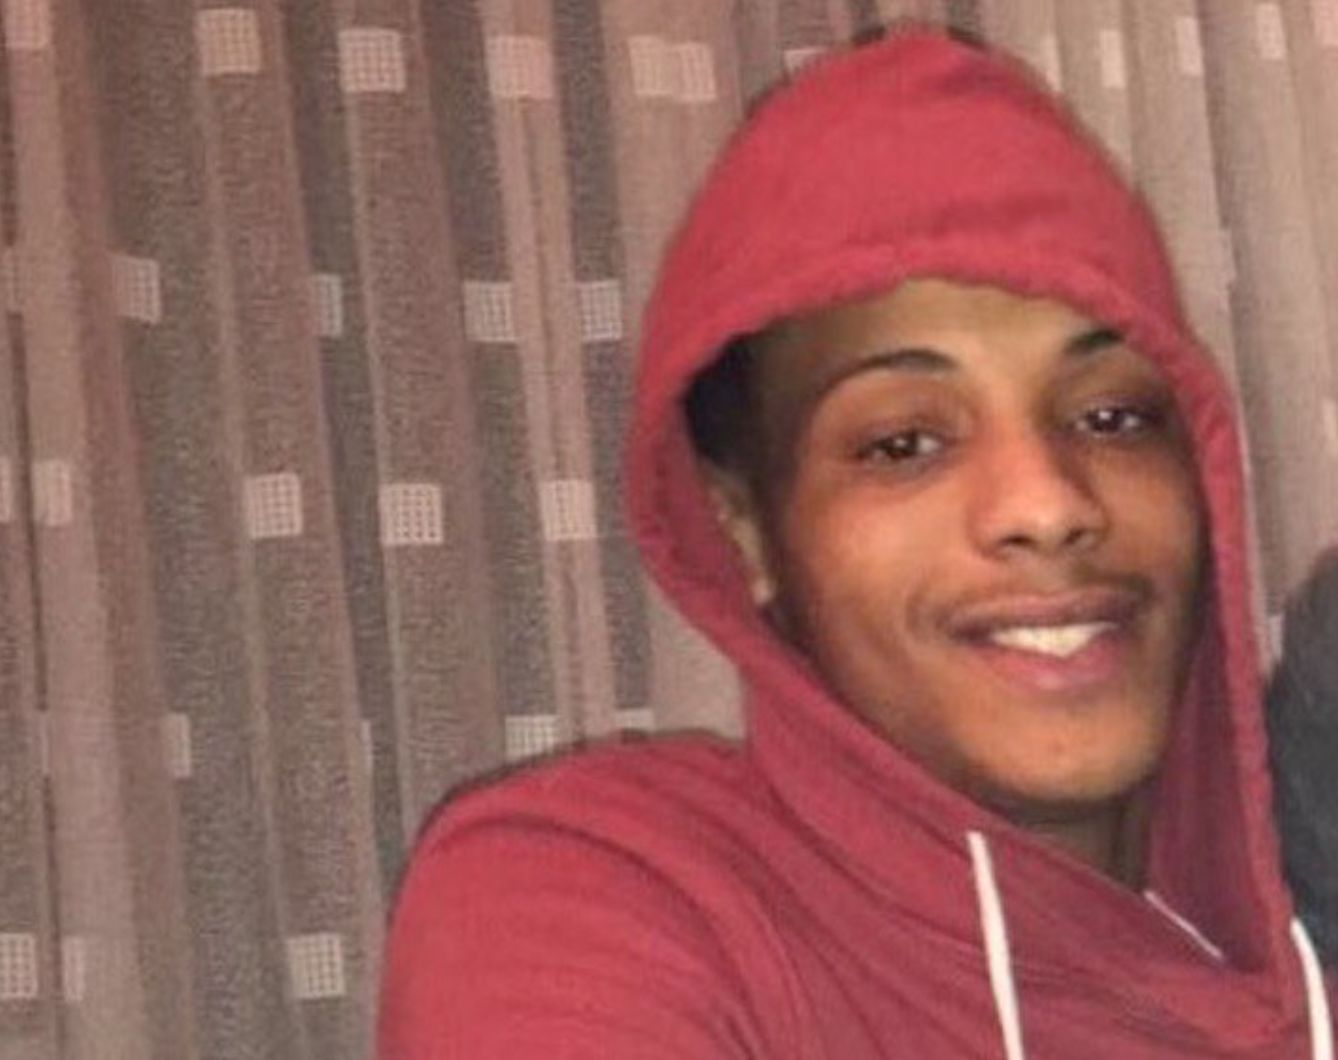 Rashan Charles, 20, died after being restrained by police in July